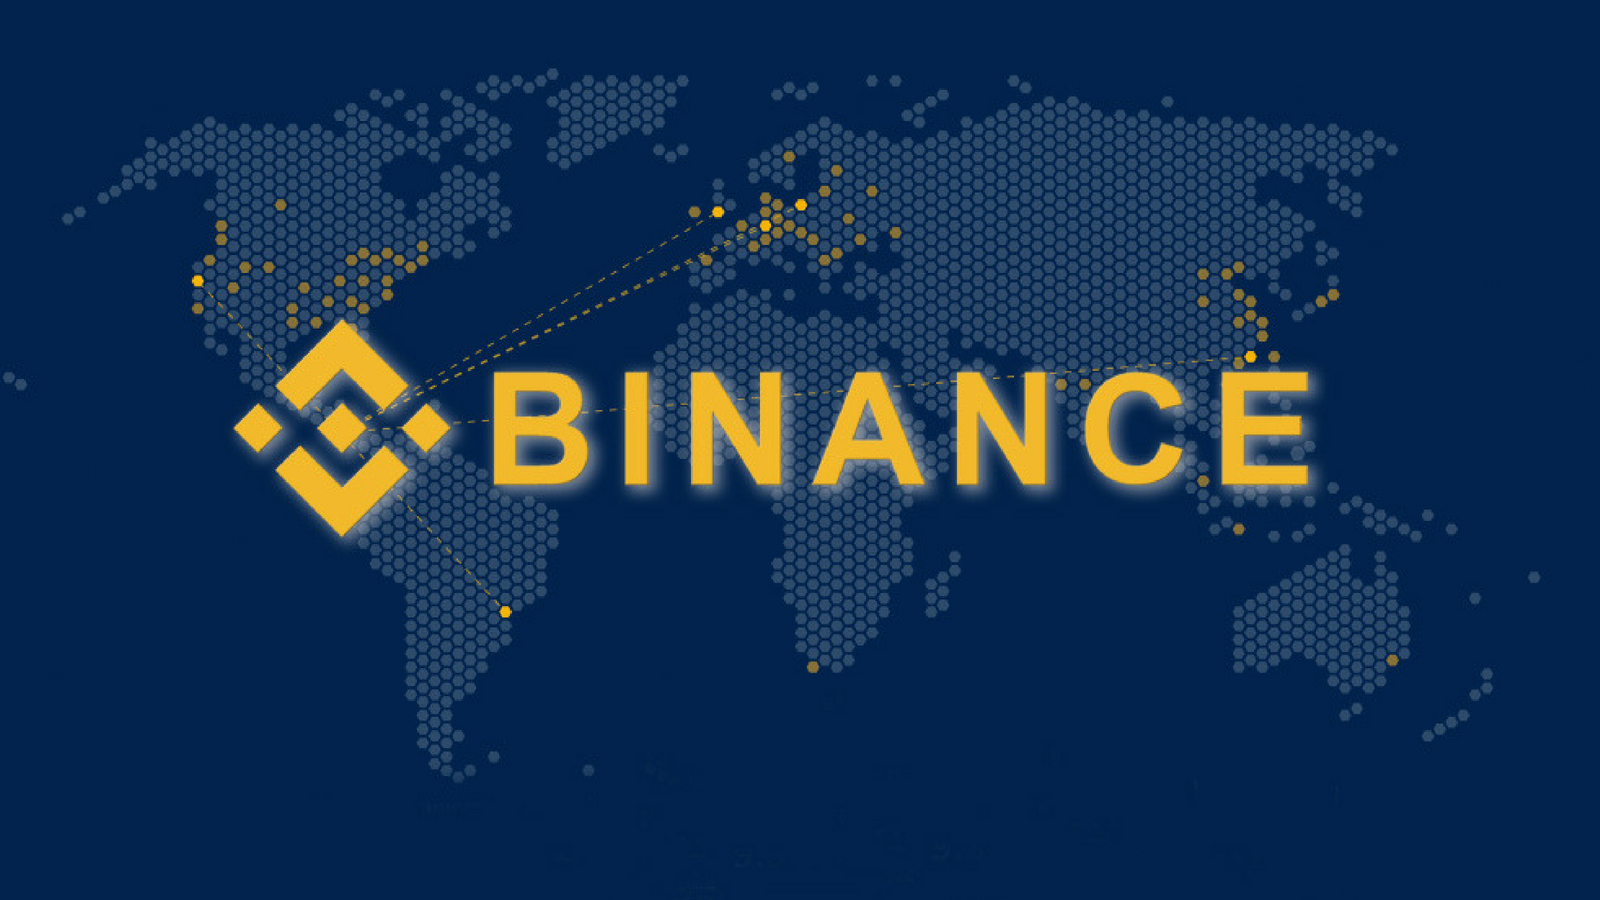 Binance Expands, Employees Take Salaries In BNB - Altcoin